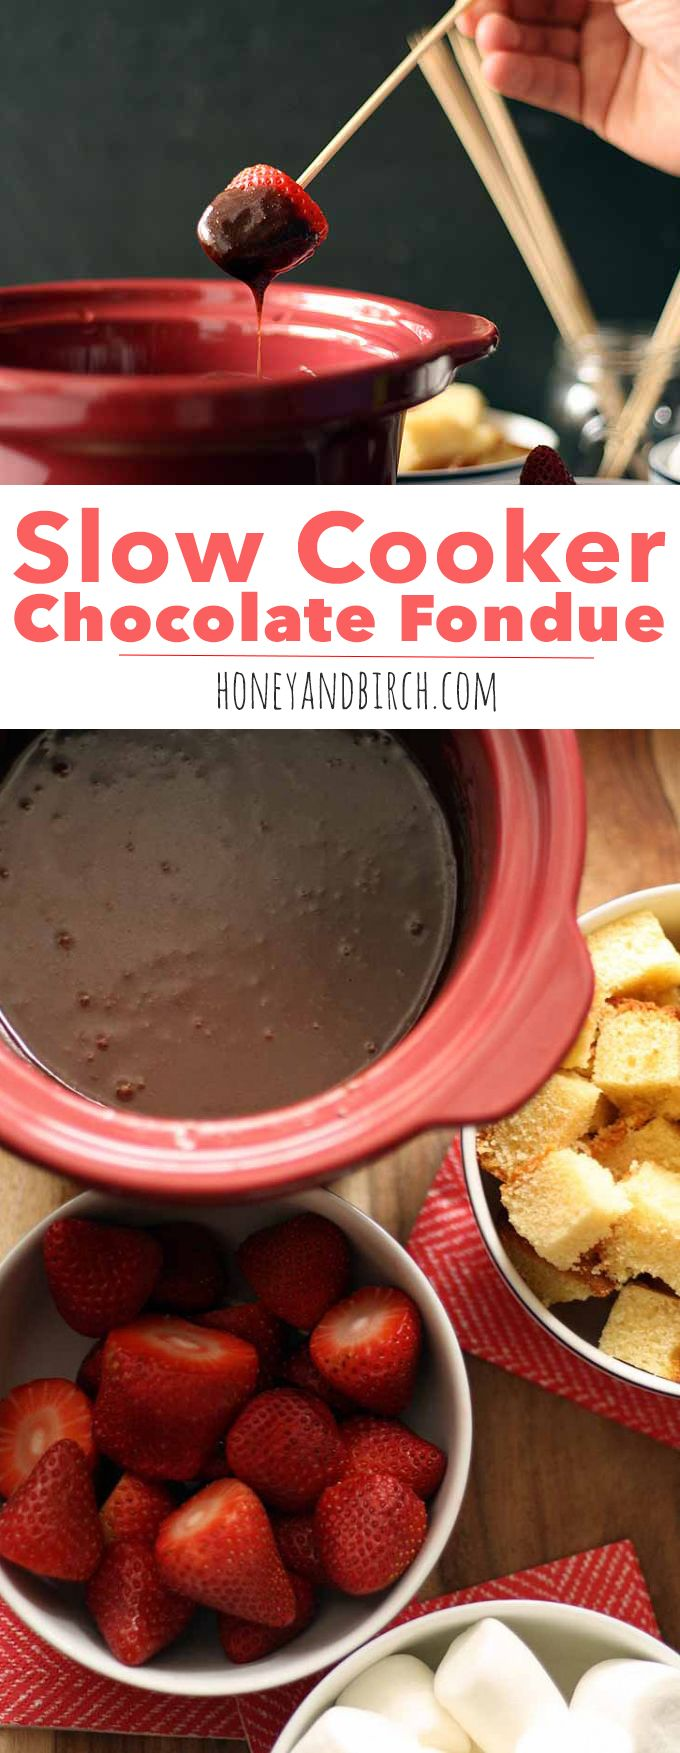 Slow Cooker Chocolate Fondue - perfect for parties and special occasions like Valentine's Day. Only 3 ingredients! | www.honeyandbirch.com